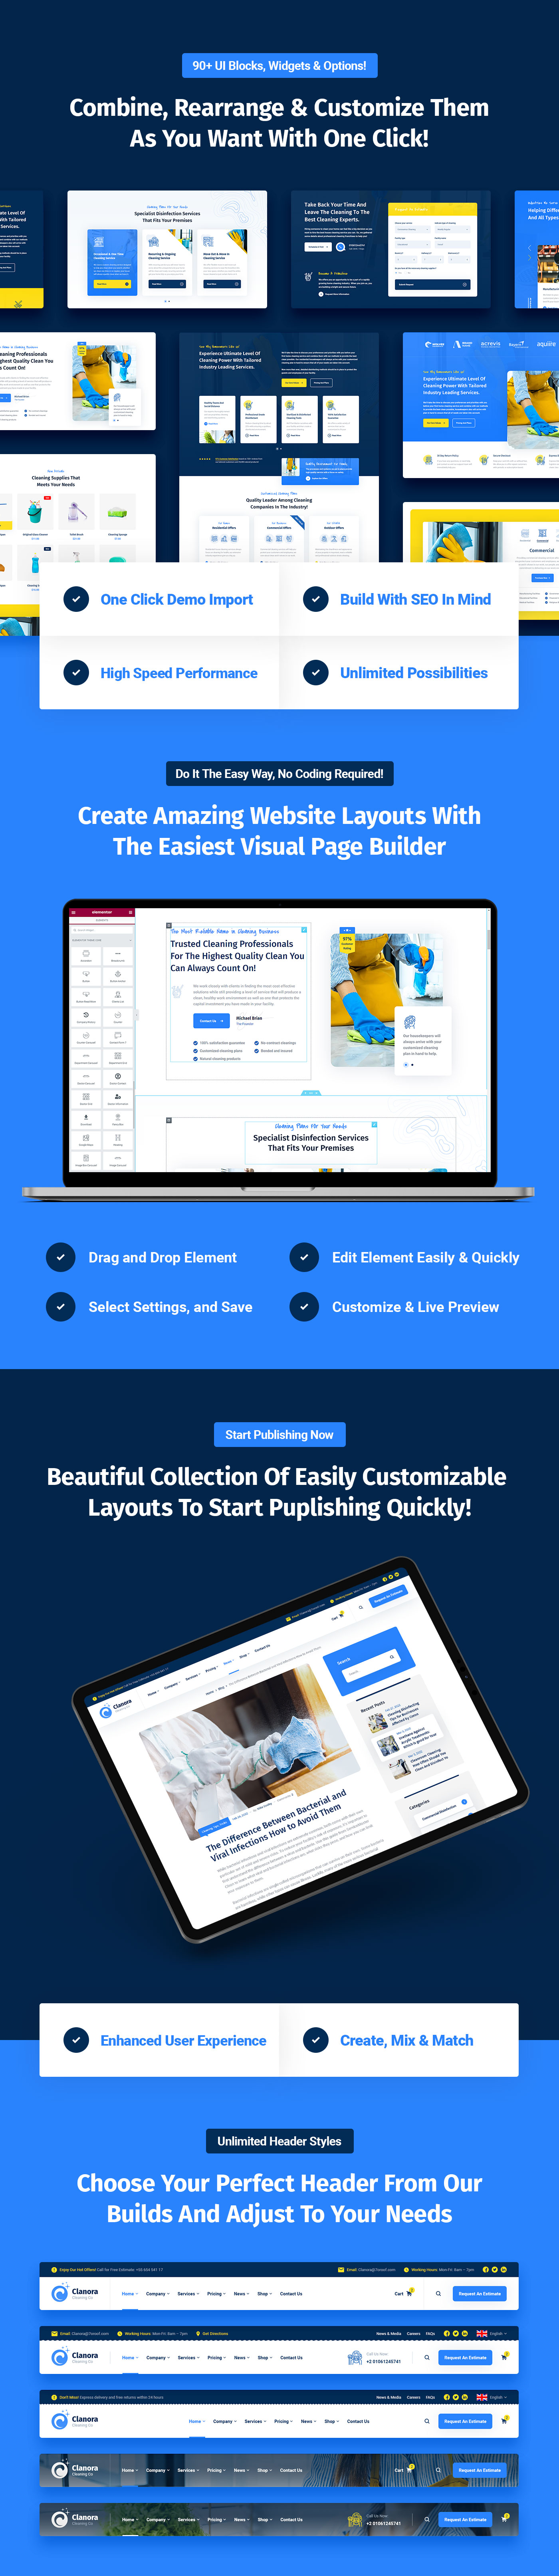 Clanora - Cleaning Services WordPress Theme - 7